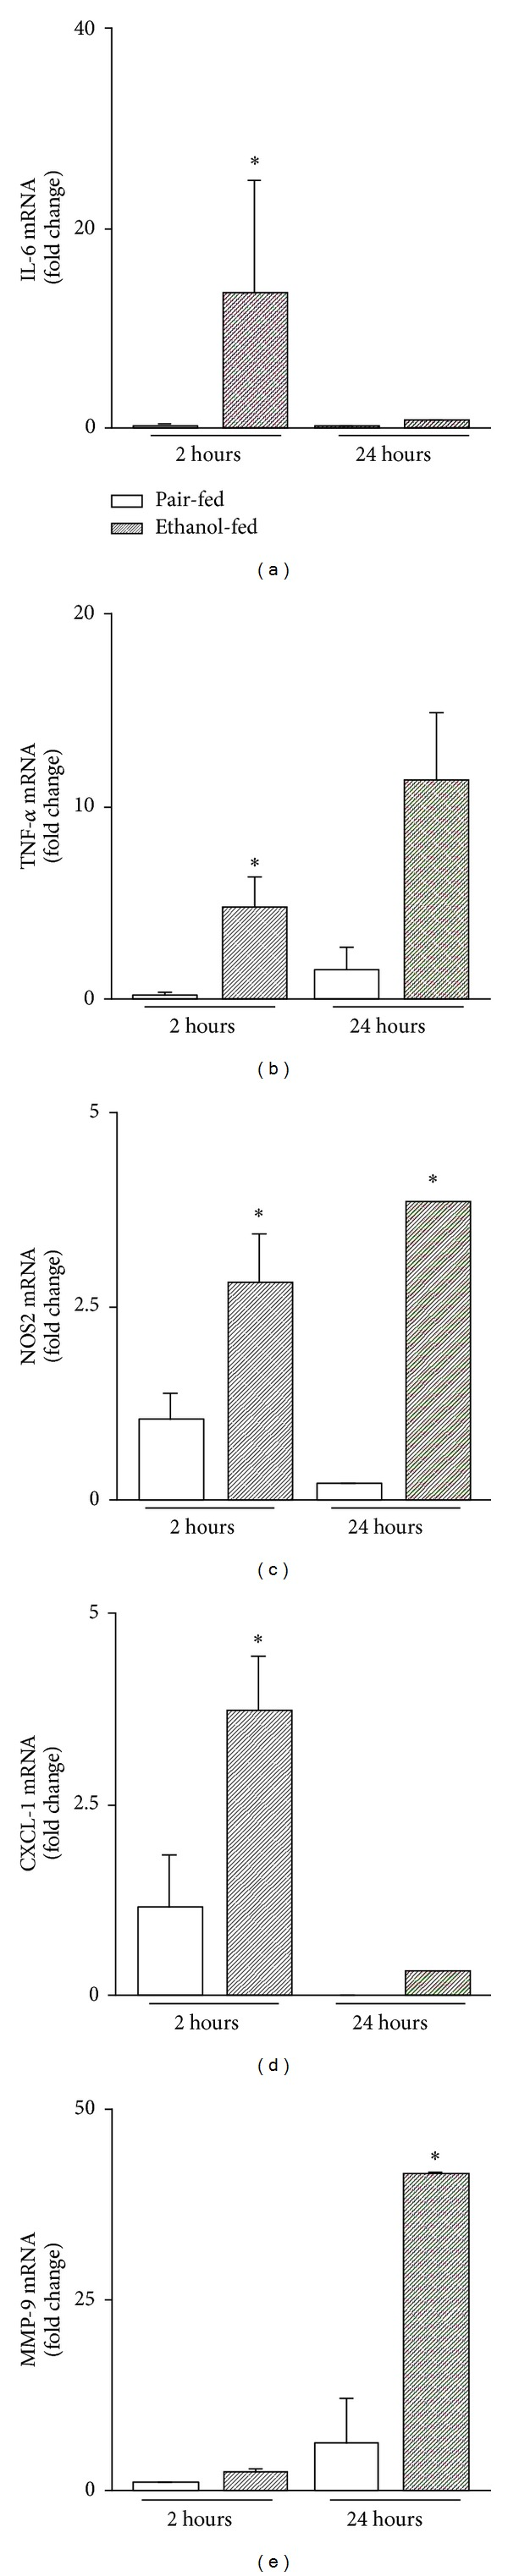 NF- κ B target gene expression in isolated Kupffer cells in response to TNF- α after ethanol feeding F4/80 + macrophages were isolated from livers of ethanol-, pair-fed mice, respectively, and stimulated with TNF- α (500 ng/mL) for 2 h and 24 h. Supernatants were measured for mRNA levels of IL-6 (a), TNF- α (b), NOS2 (c), CXCL-1 (d), and MMP-9 (e) by RT-PCR. Data (mean ± SEM) are expressed as fold change compared with corresponding medium controls (unstimulated) and are representative of five to eight separate experiments. * P